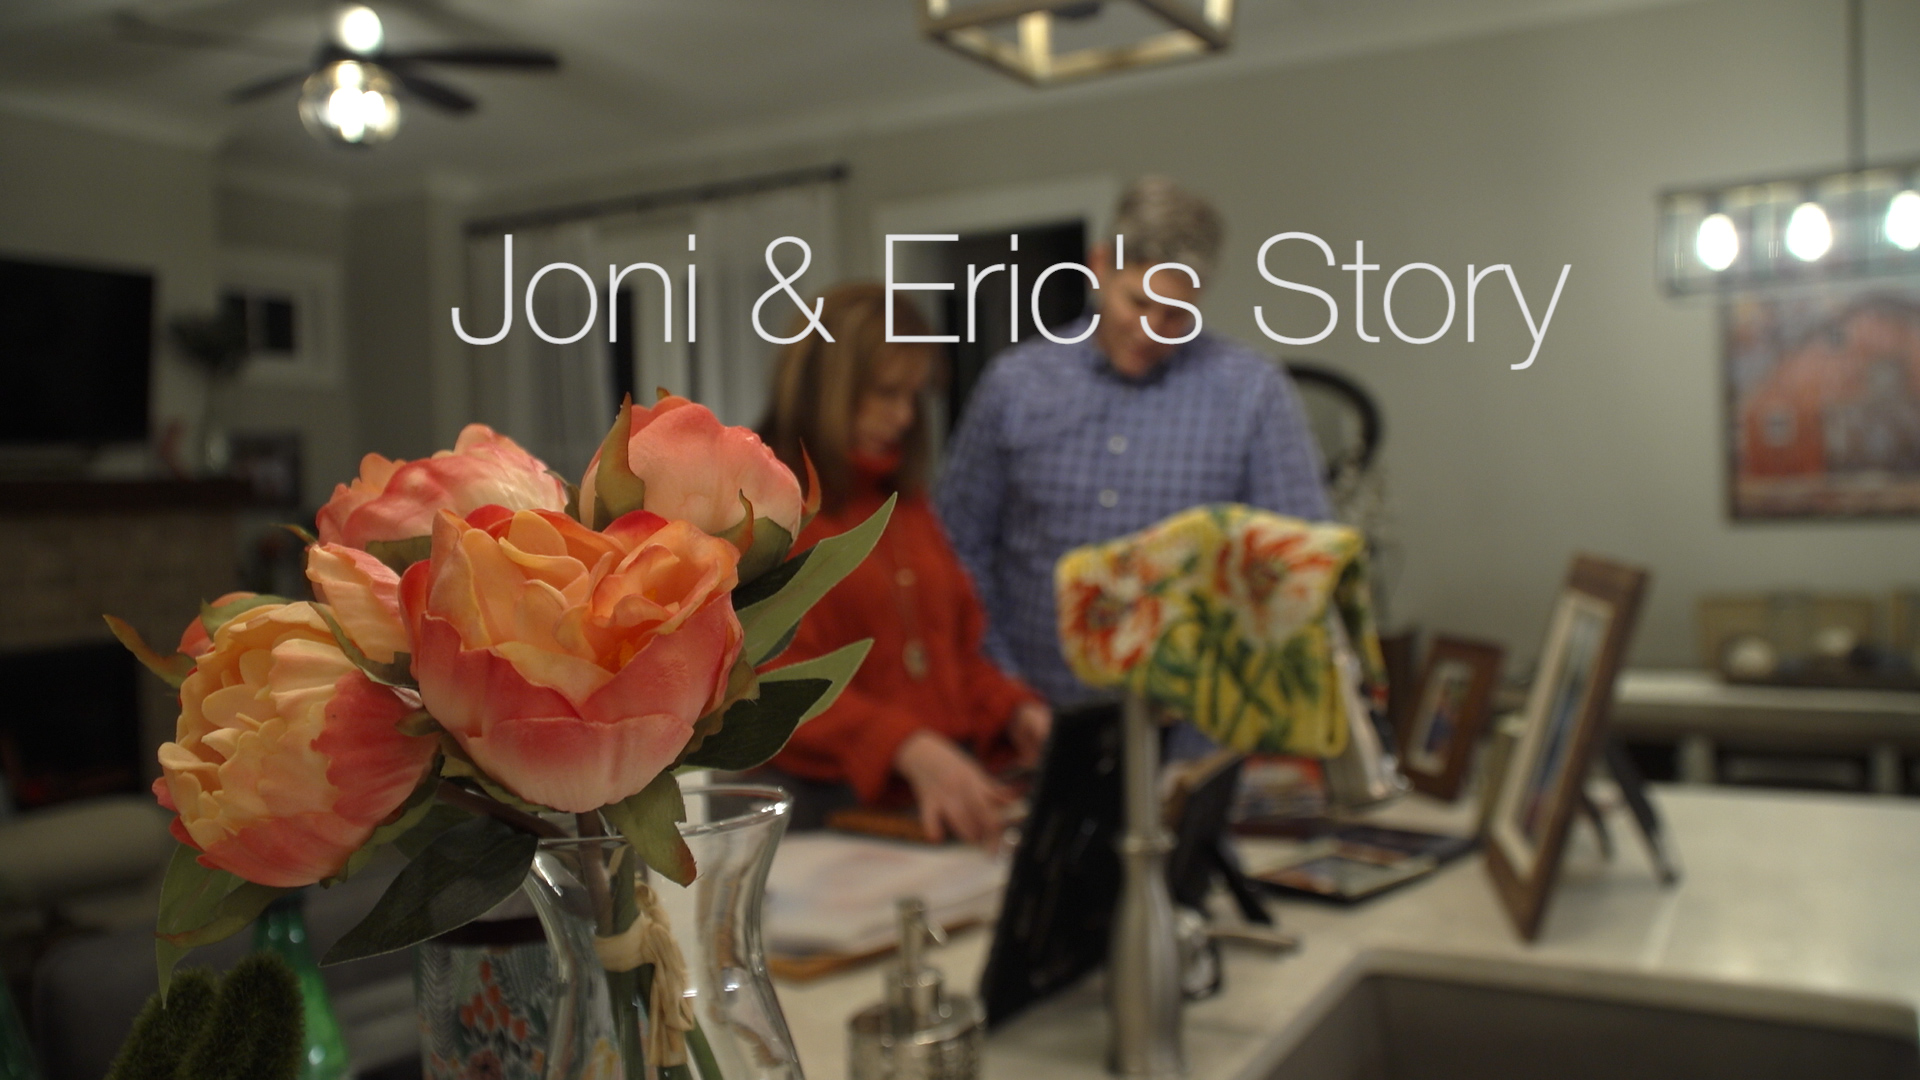 Joni and Eric's Story